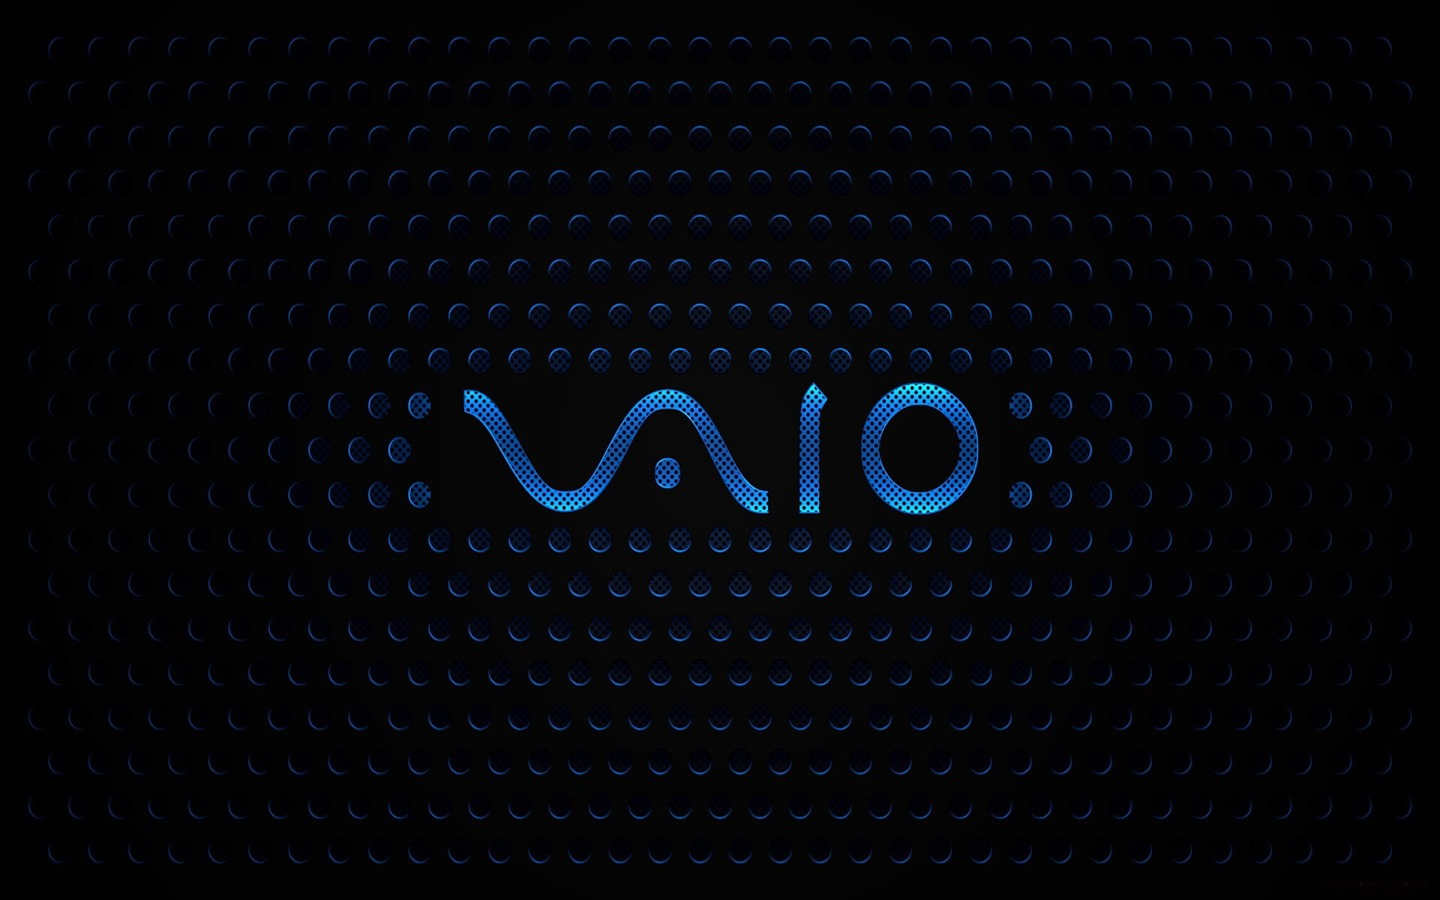 Sony Vaio Wallpaper Or Themes